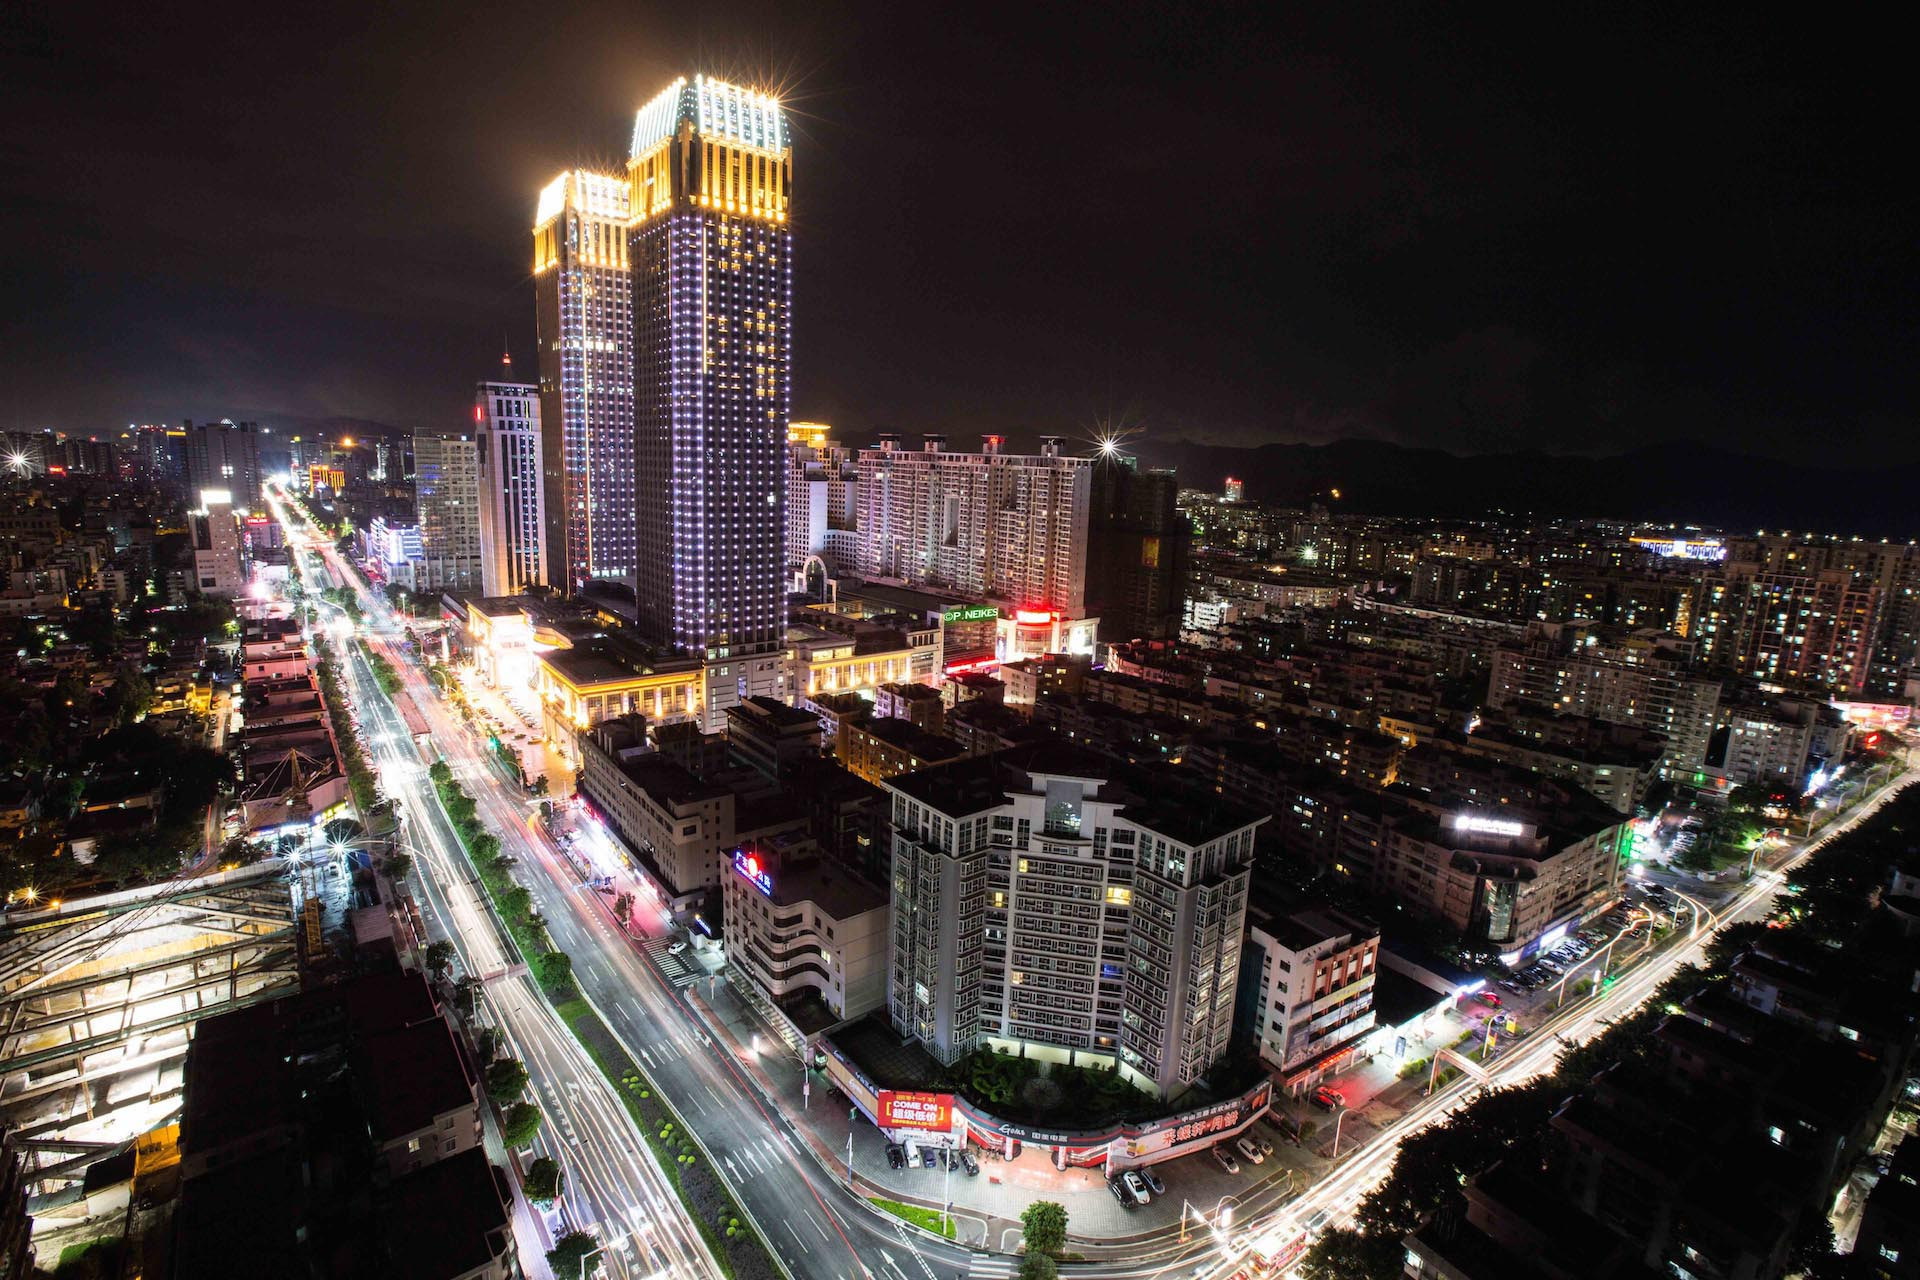 Zhongshan City - Hilton Hotel & LiHe Shopping district